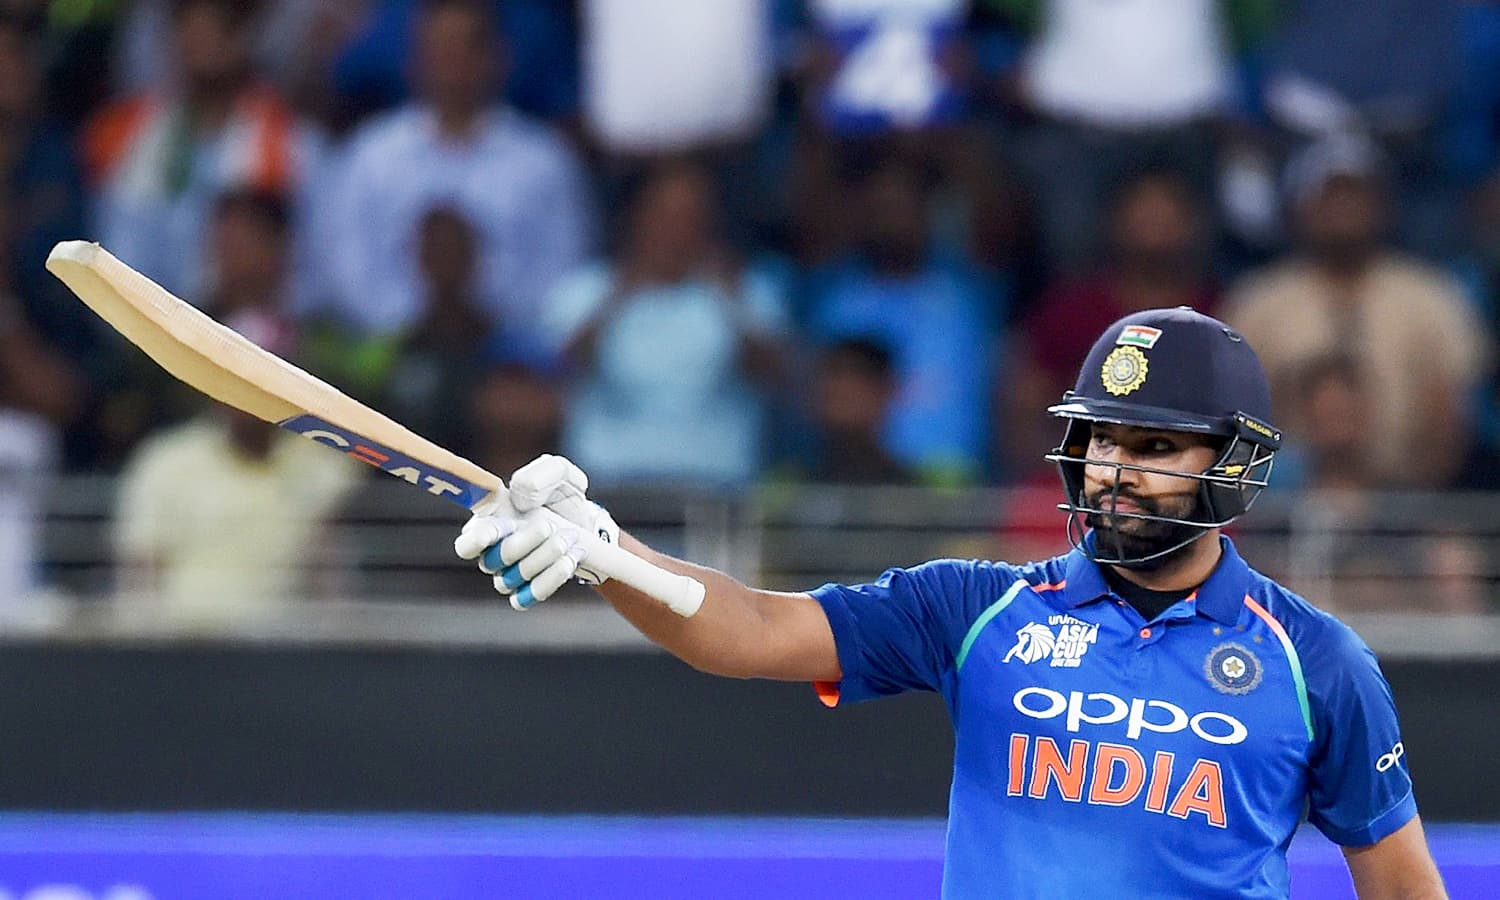 Indian cricket team captain Rohit Sharma celebrates after scoring a half-century (50 runs). —AFP